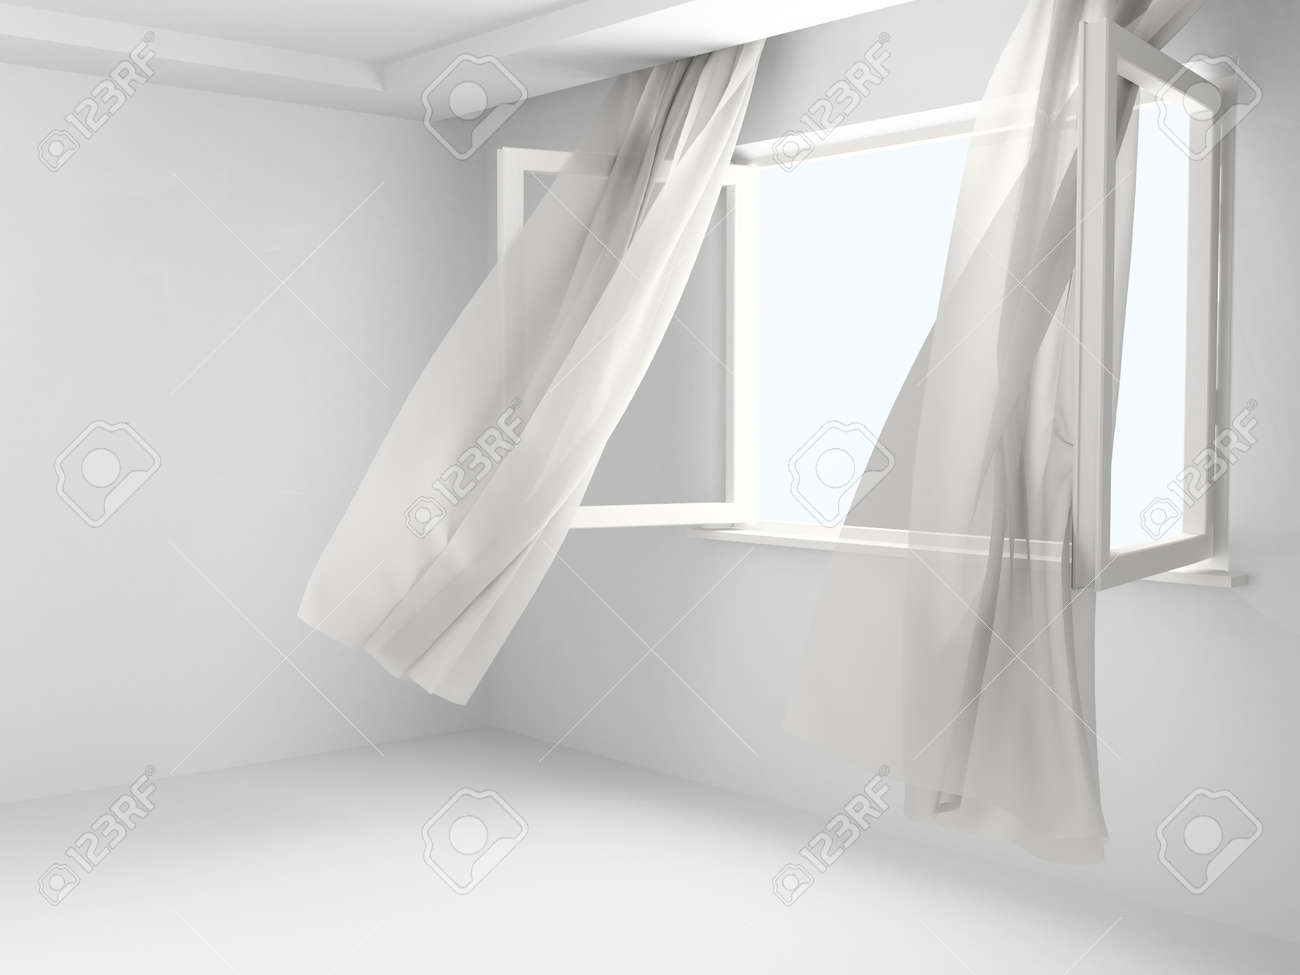 Open Window With The Curtains Developed By A Wind In An Empty